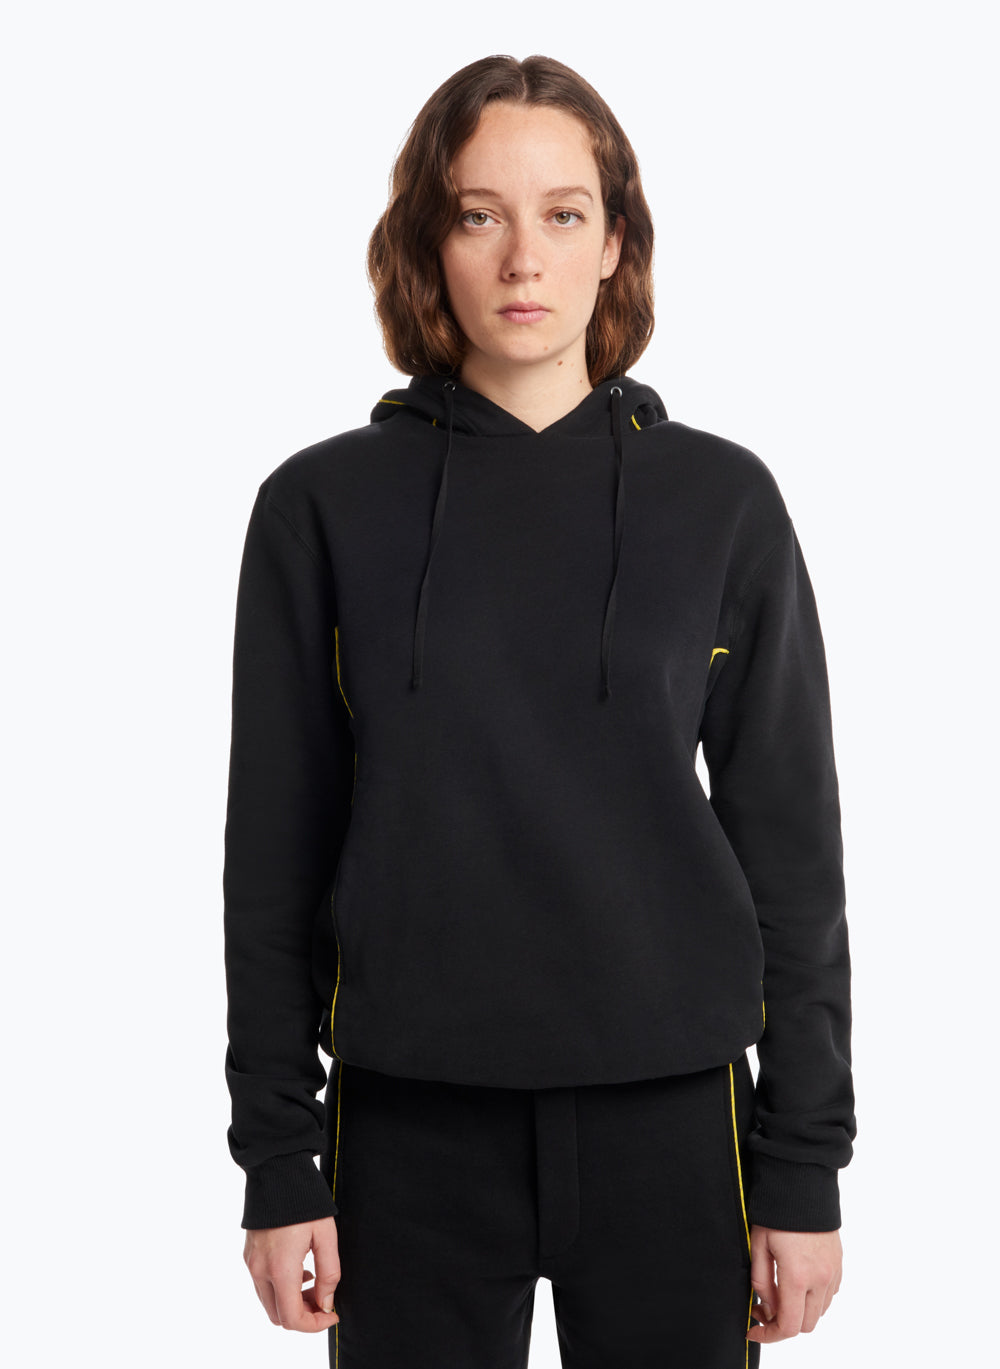 Hooded Sweatshirt with Side Cutouts in Black Fleece with Yellow Trim